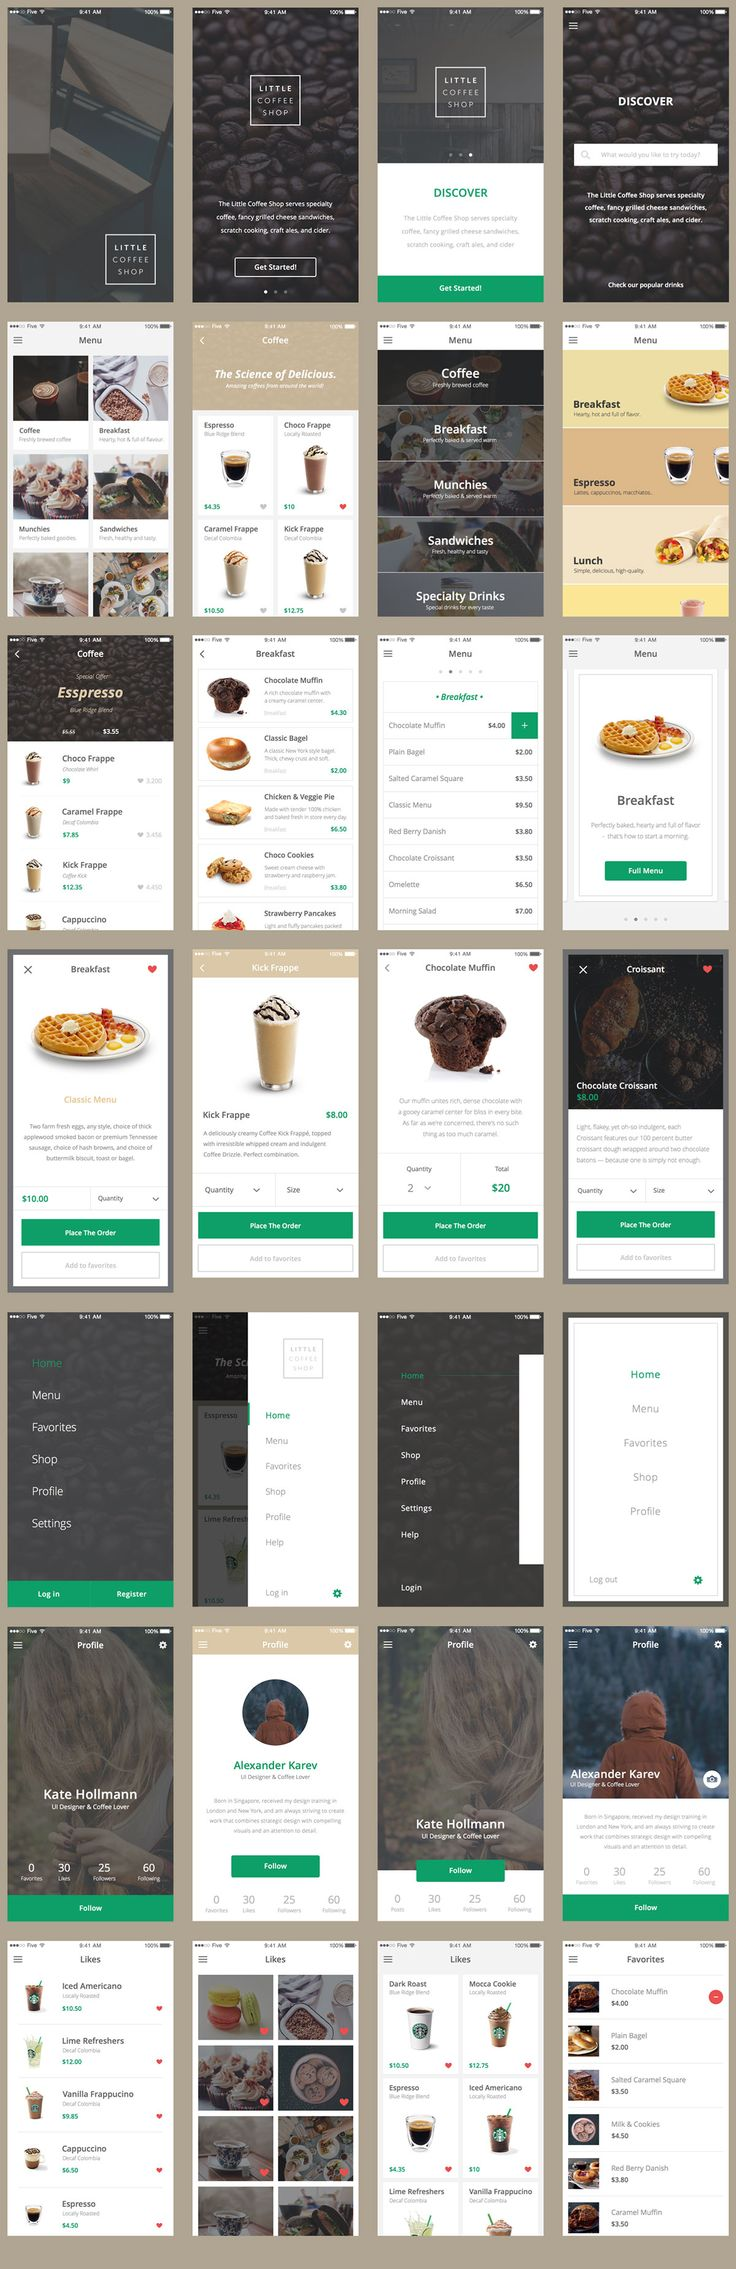 Ecommerce Mobile App UI Kit